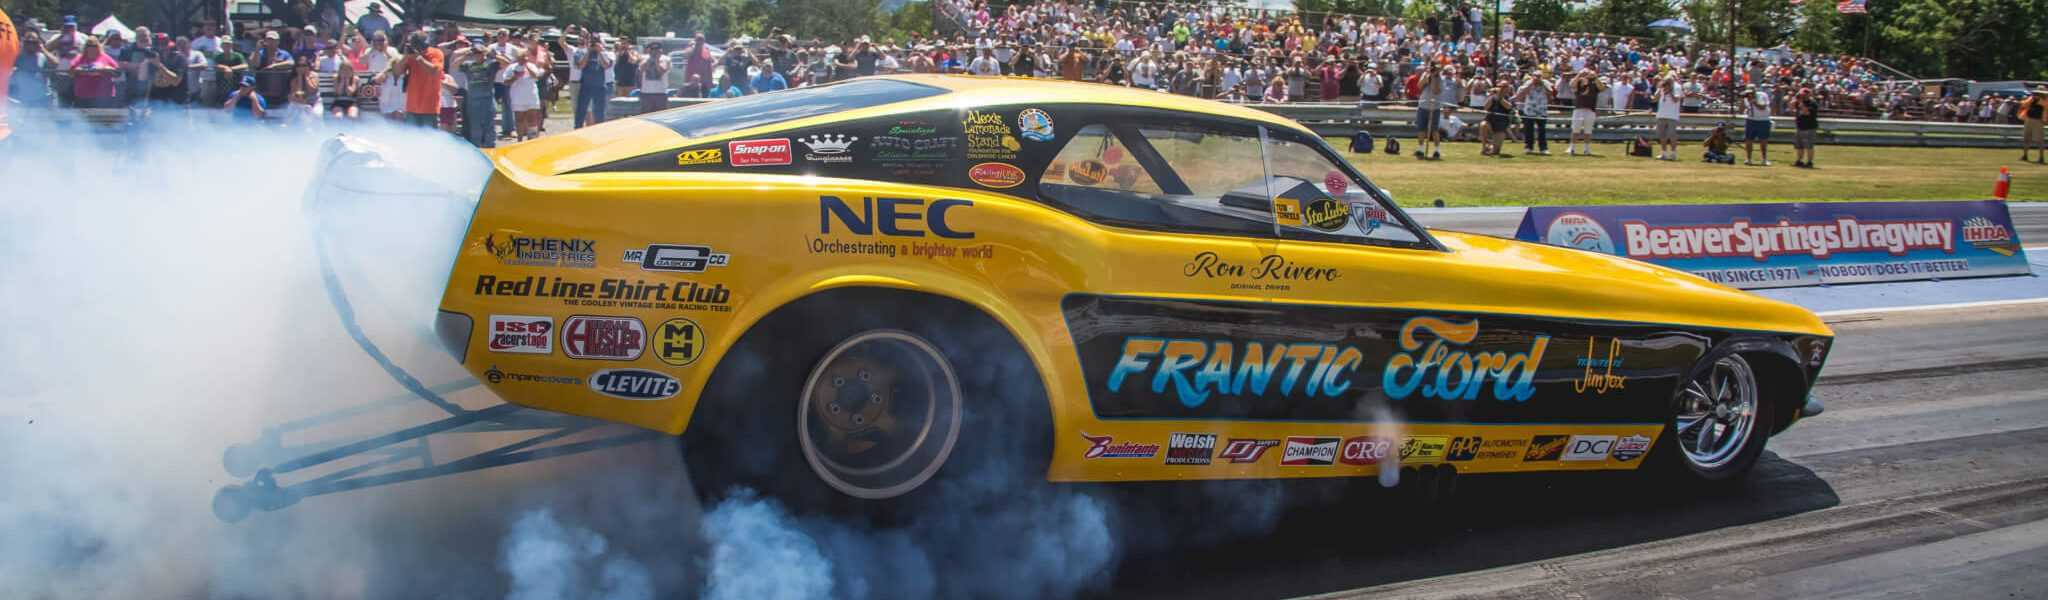 Pirrone Racing Team at the Nostalgia Nationals